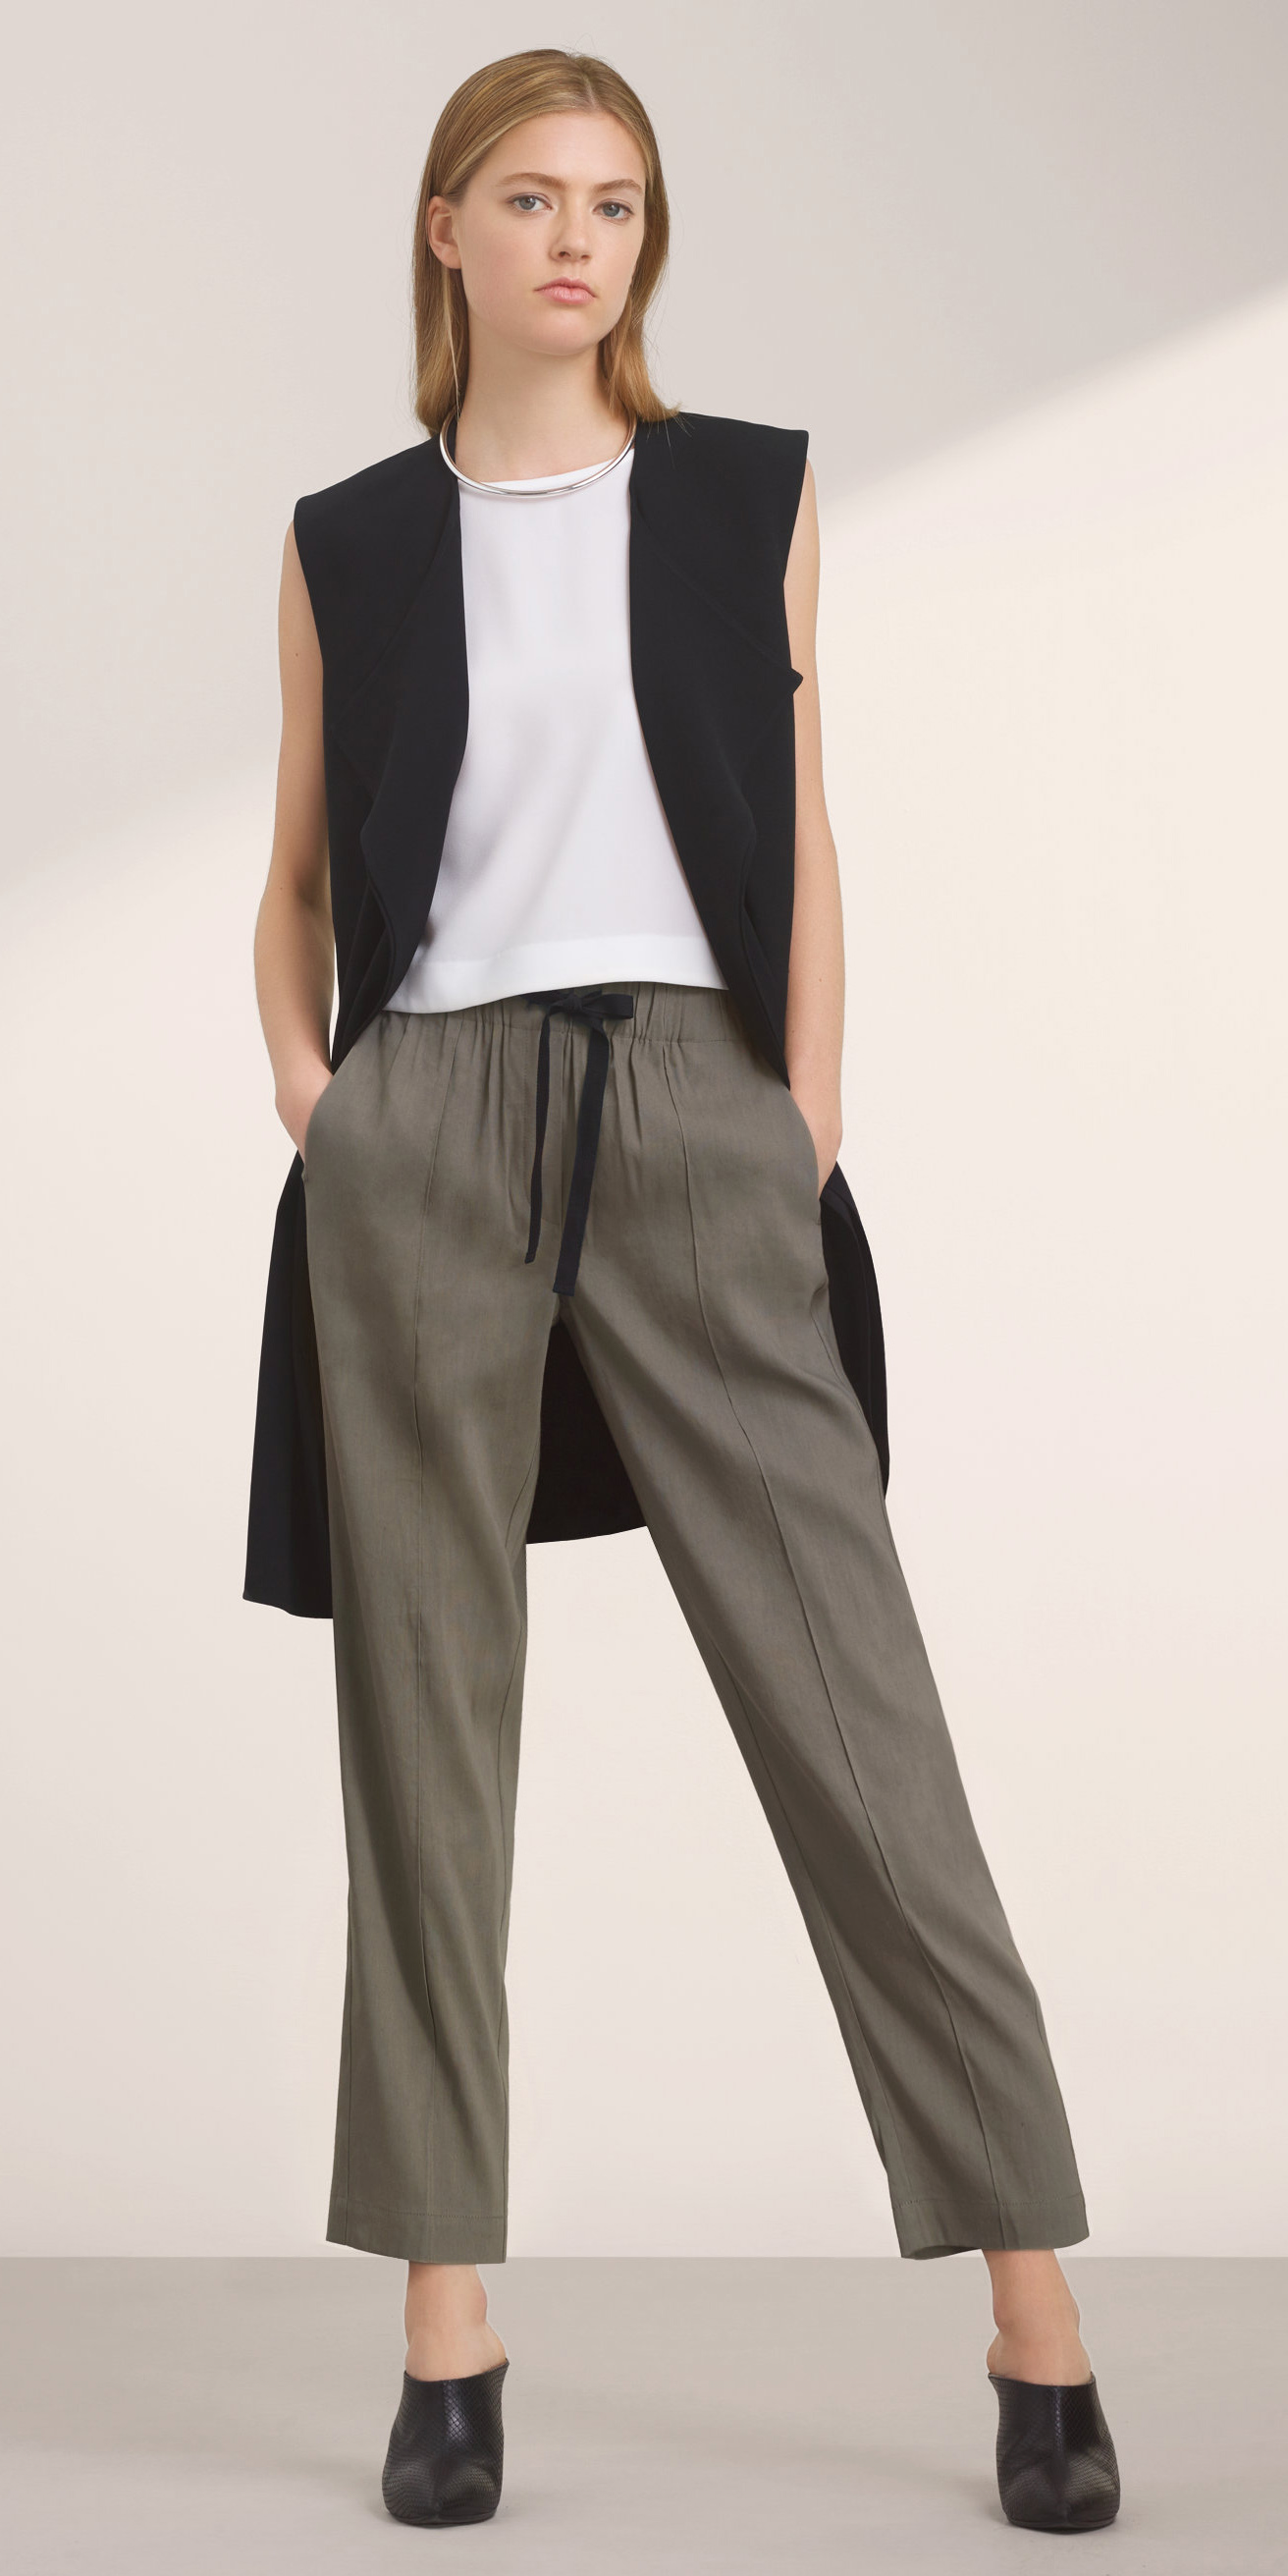 grayd-joggers-pants-white-top-blonde-collar-necklace-black-vest-tailor-black-shoe-booties-fall-winter-lunch.jpg